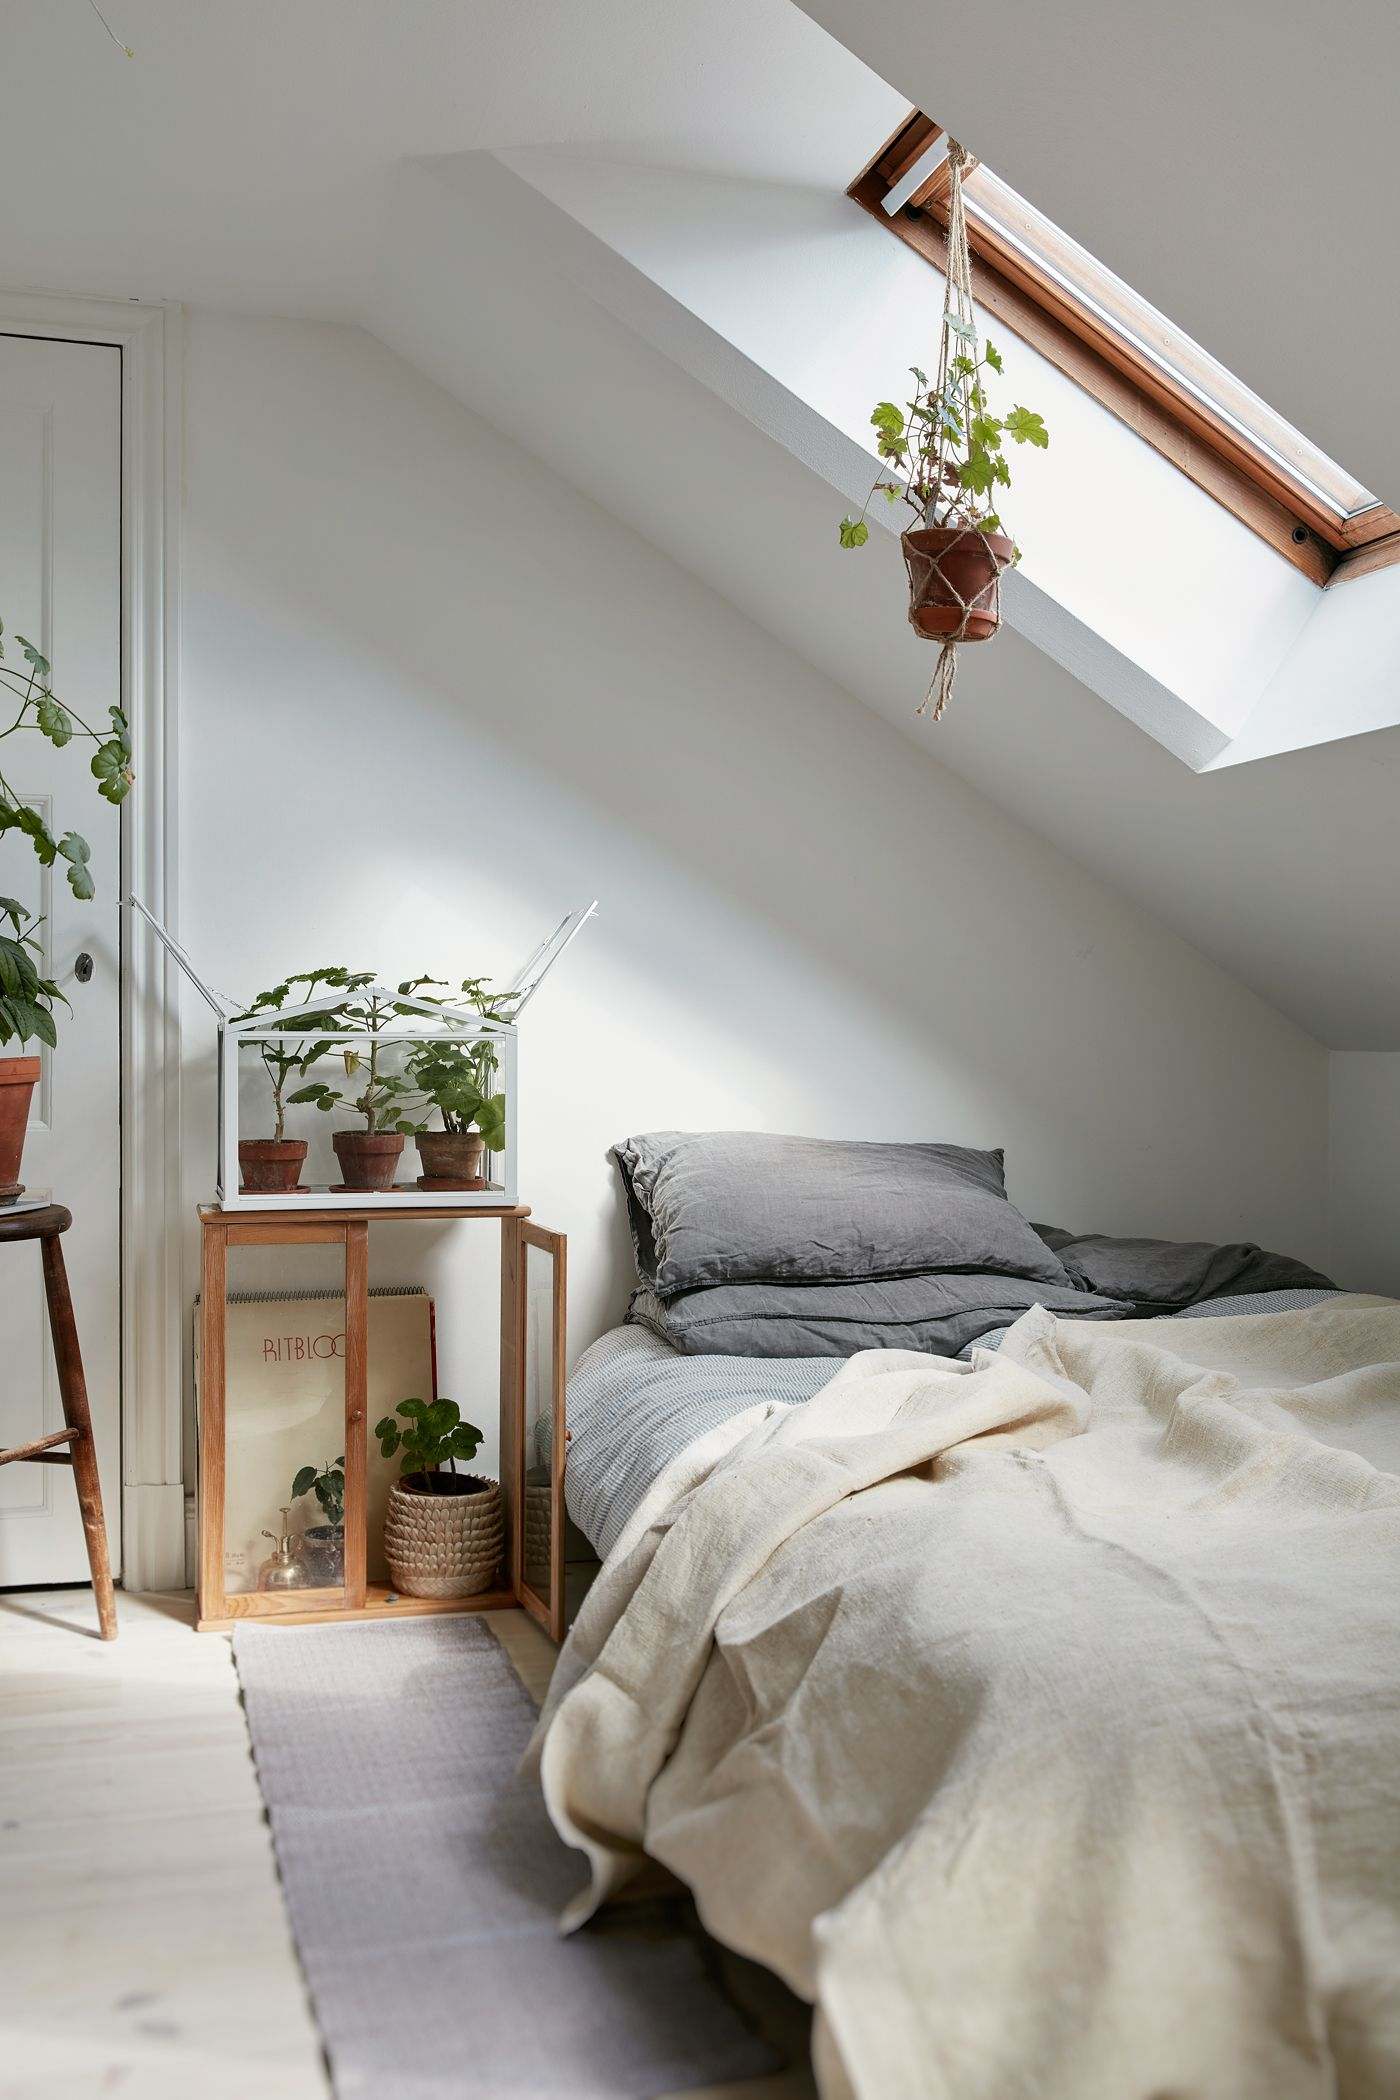 Attic bedroom in a Charming Plant-Filled Attic Apartment In Sweden - Gravity Home